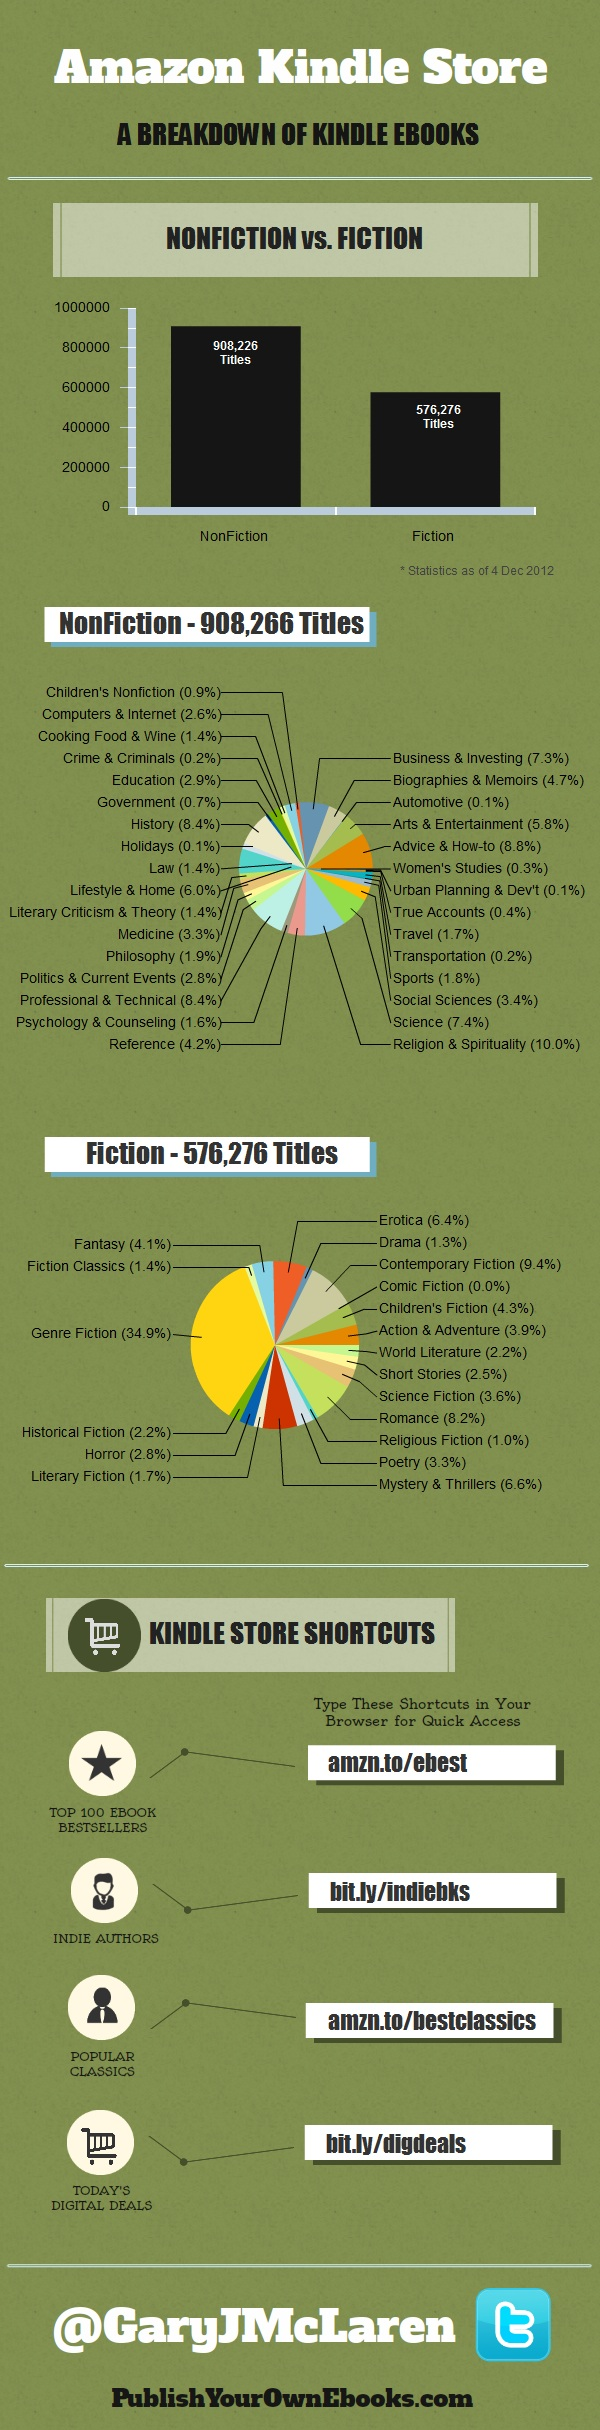 Kindle Books by Category Infographic